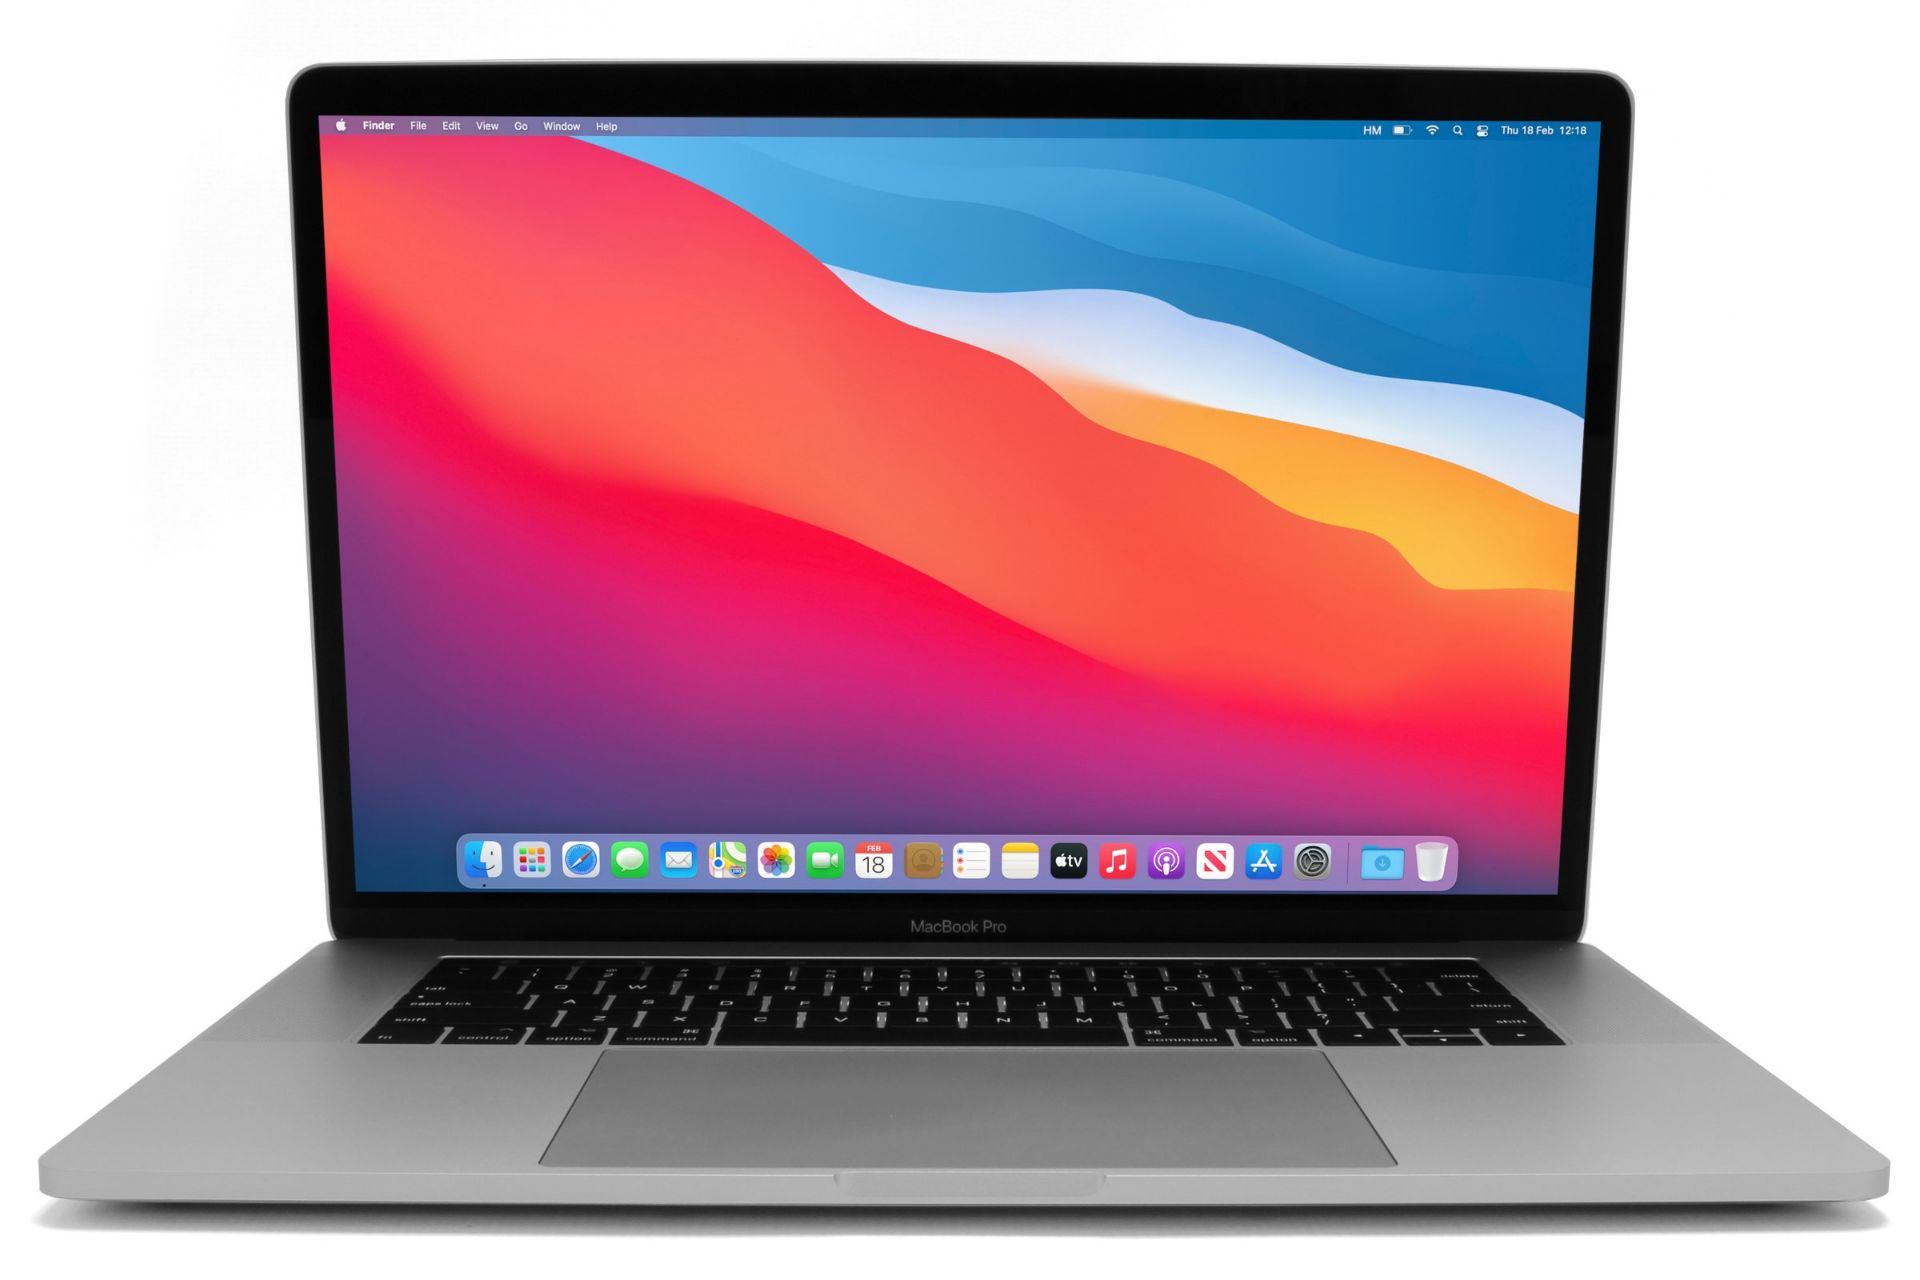 """1 BOXED APPLE MACBOOK PRO 15"""" INTEL I7, 16GB RAM, 256GB SSD MODEL MV902B/A A1990 WITH CHARGER RRP"""